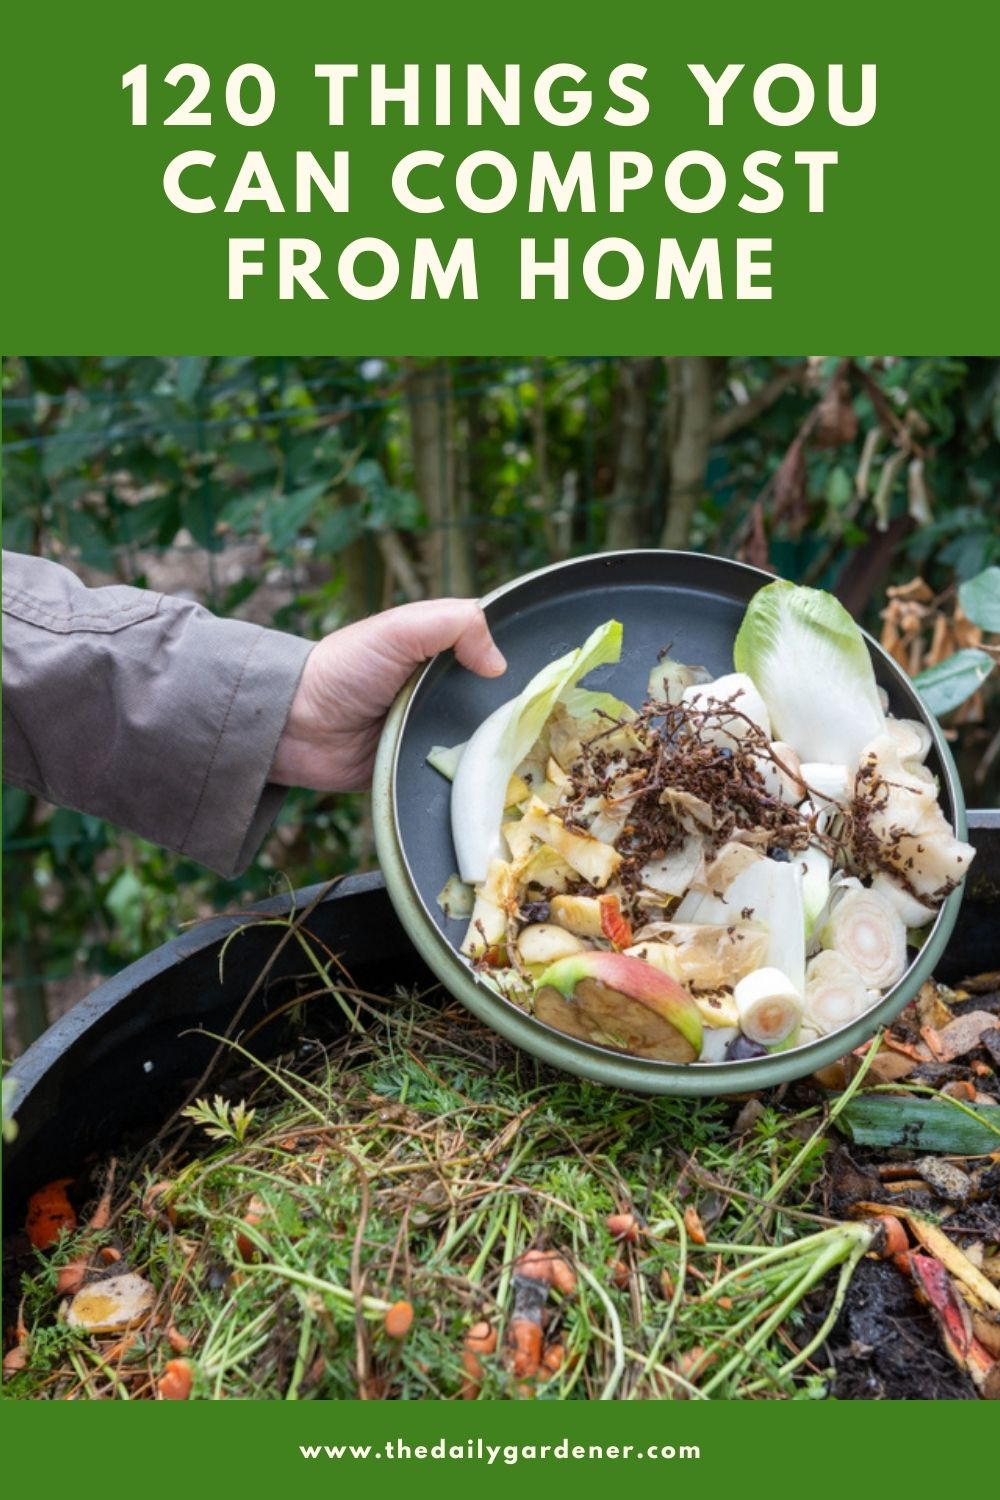 120 Things You Can Compost from Home 2